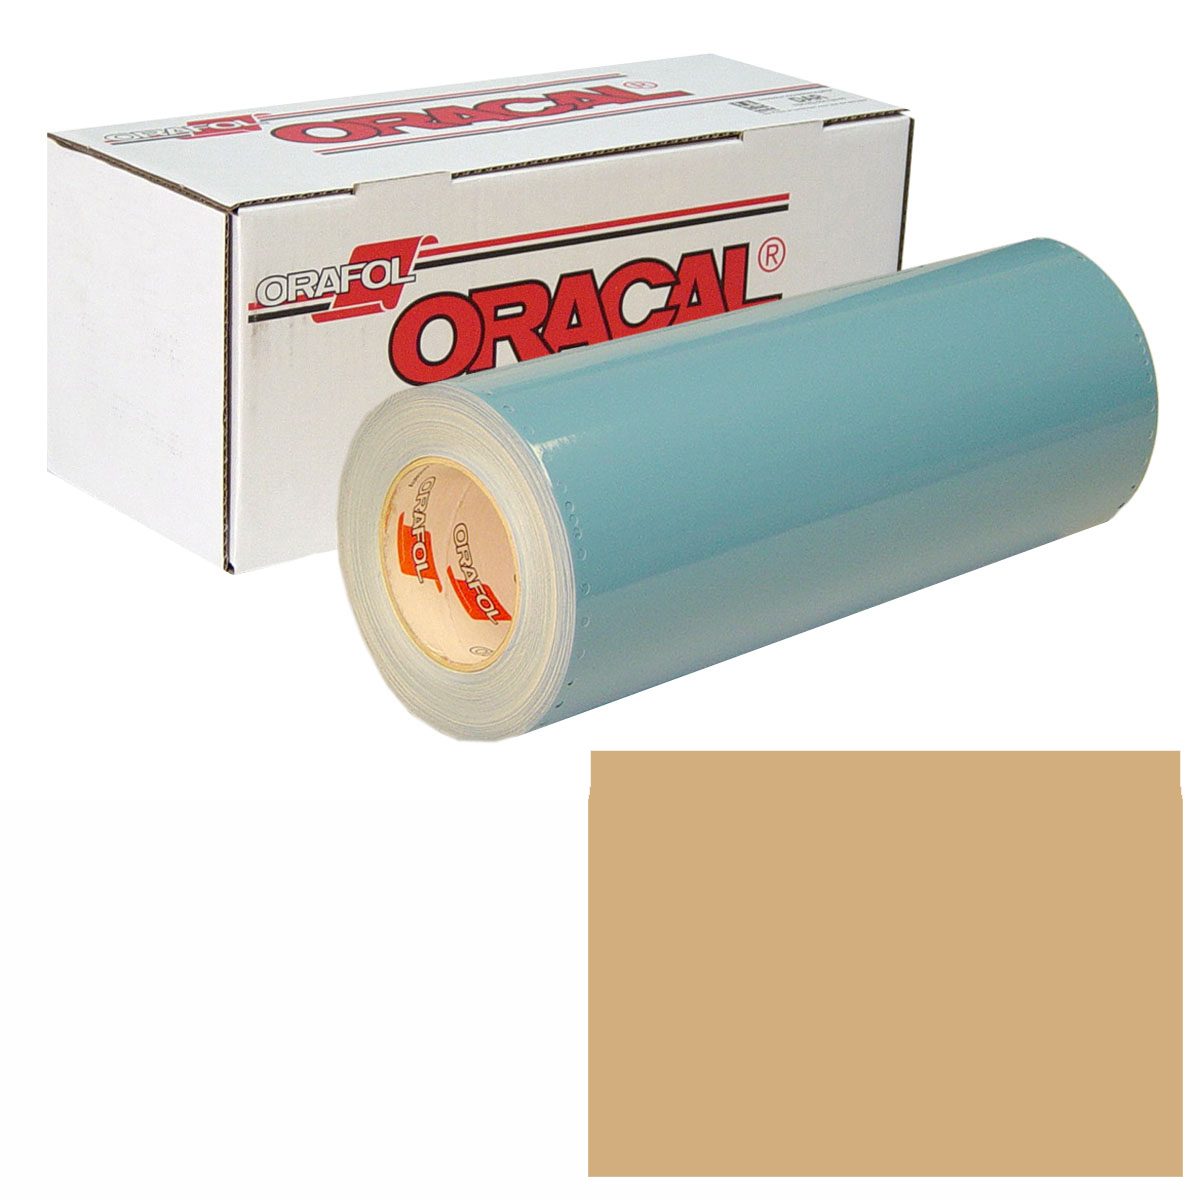 ORACAL 751 30in X 10yd 081 Light Brown